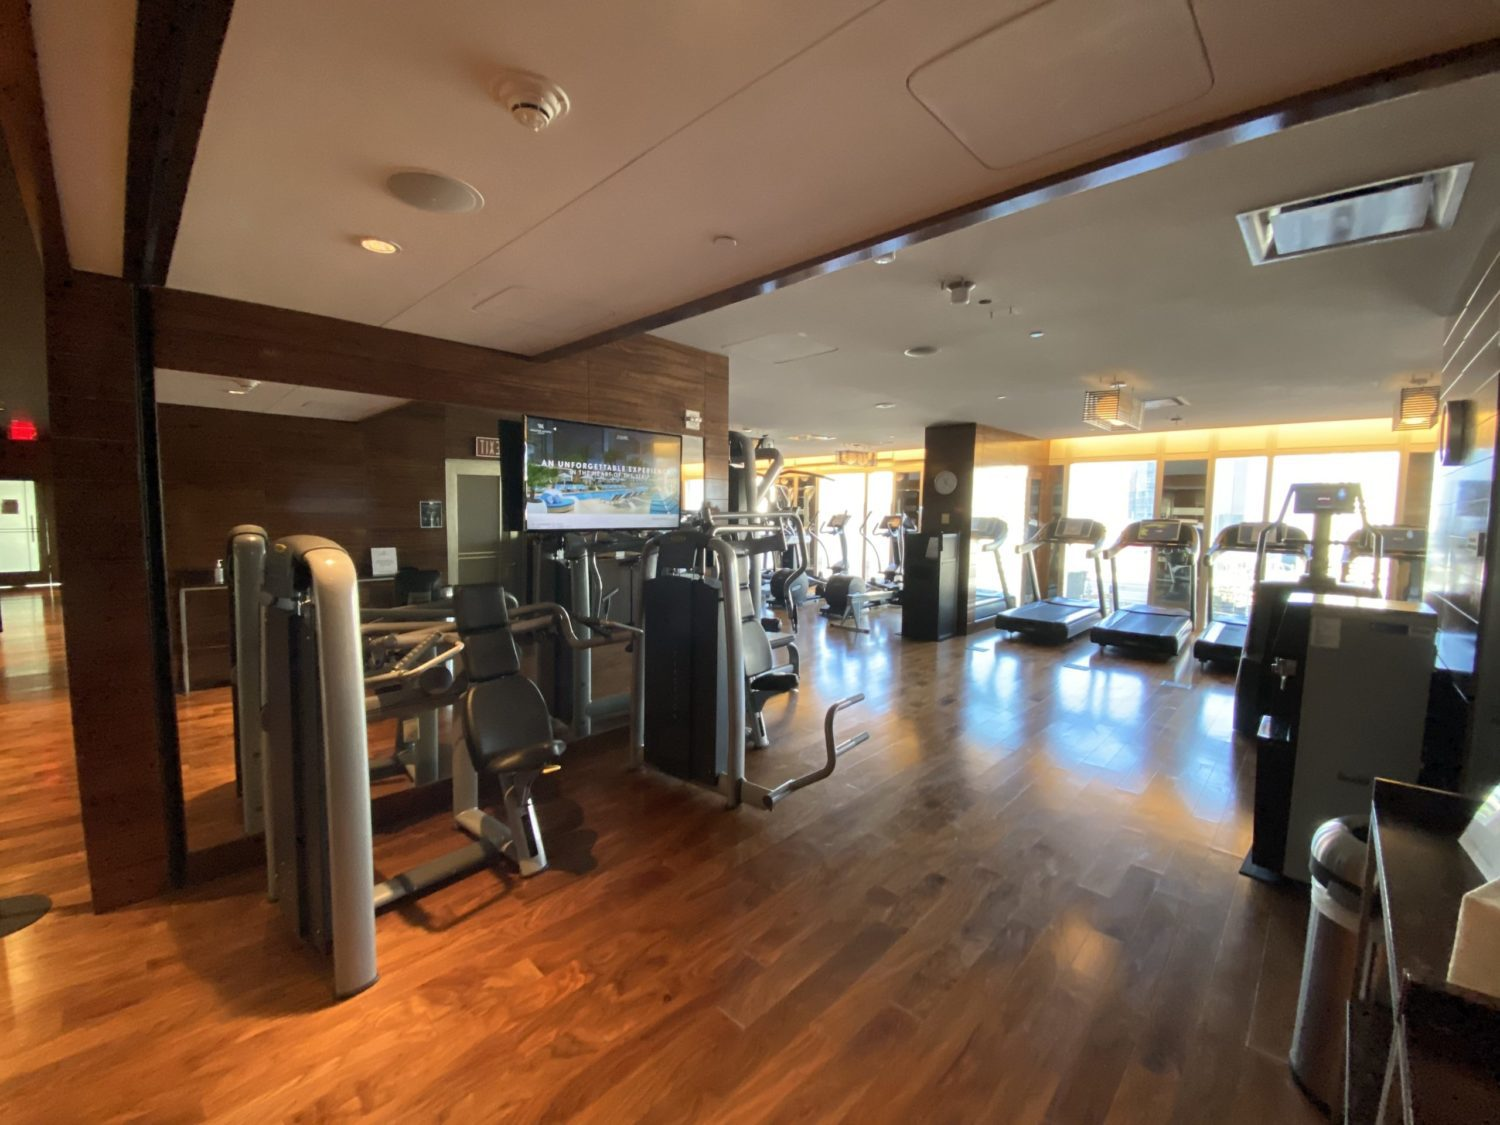 waldorf astoria las vegas gym